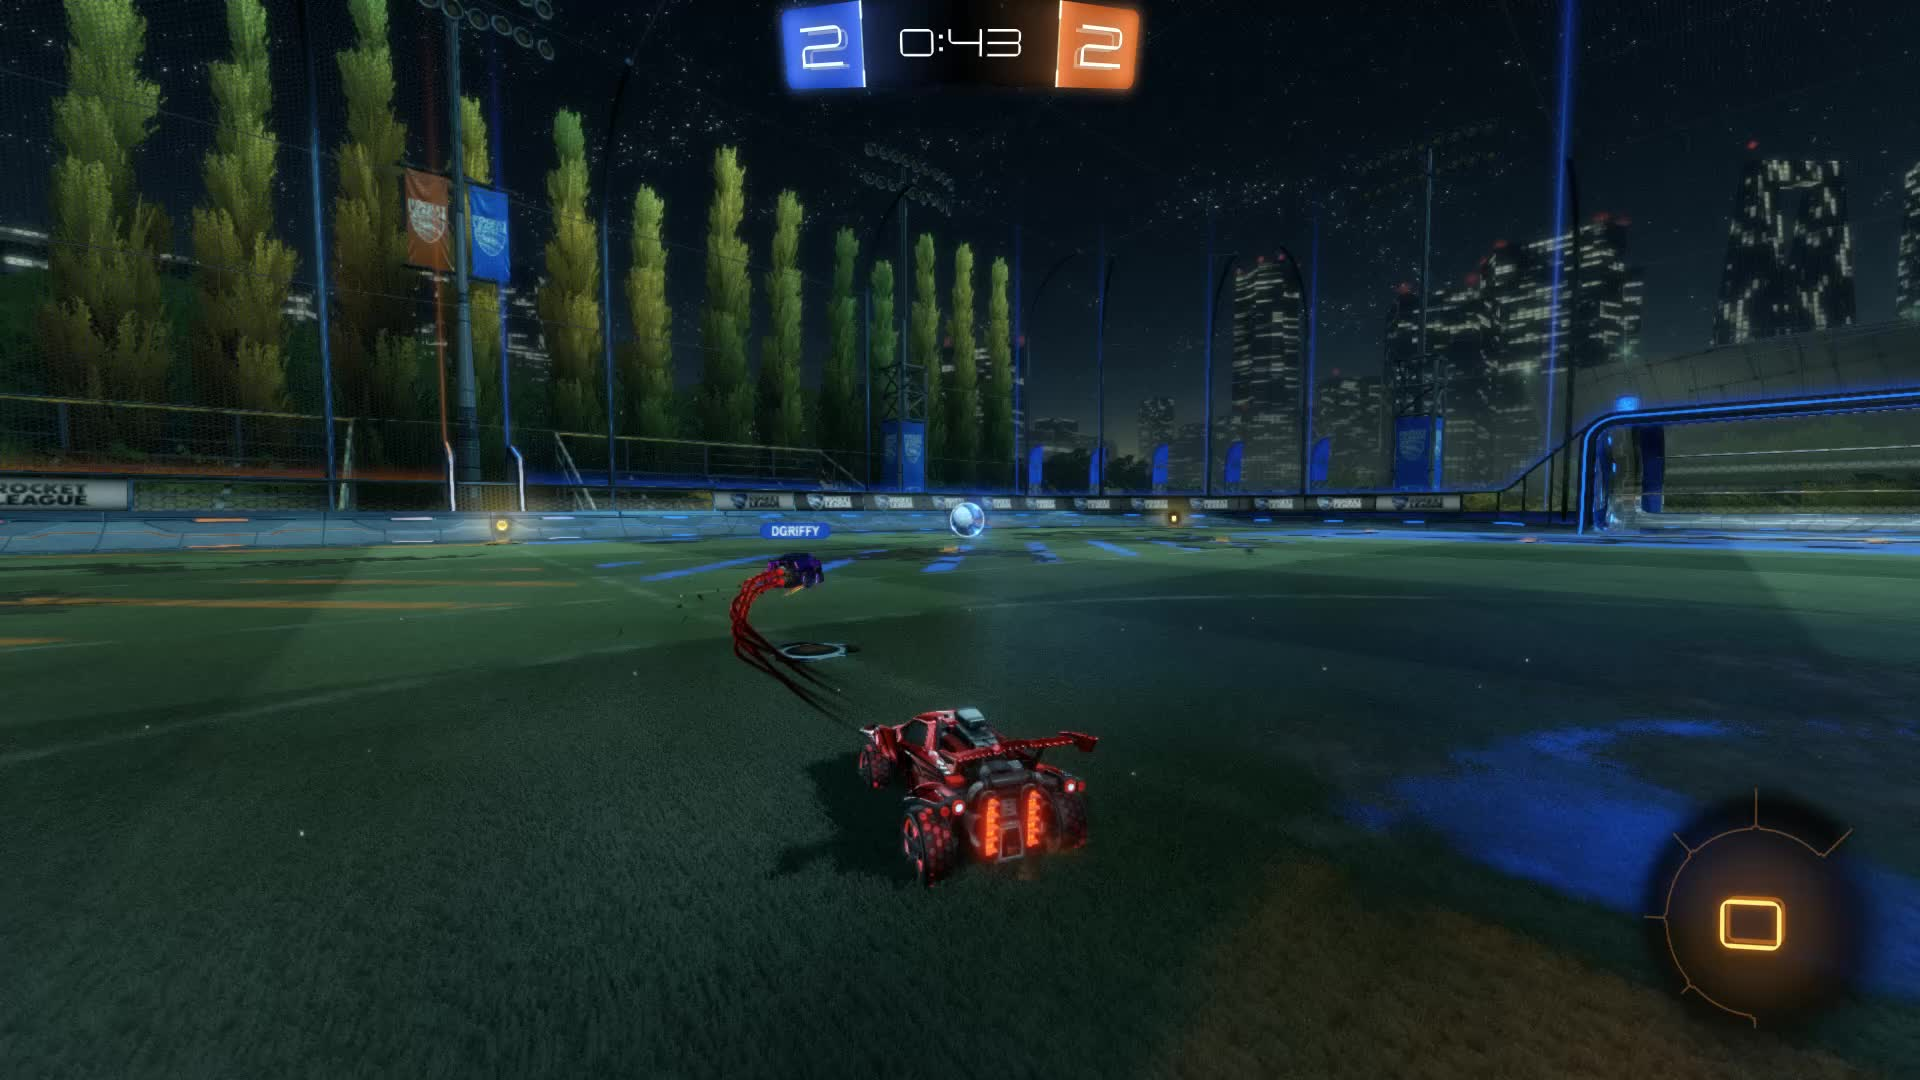 Gif Your Game, GifYourGame, Goal, Rocket League, RocketLeague, ScriptedFlick, Goal 5: ScriptedFlick GIFs